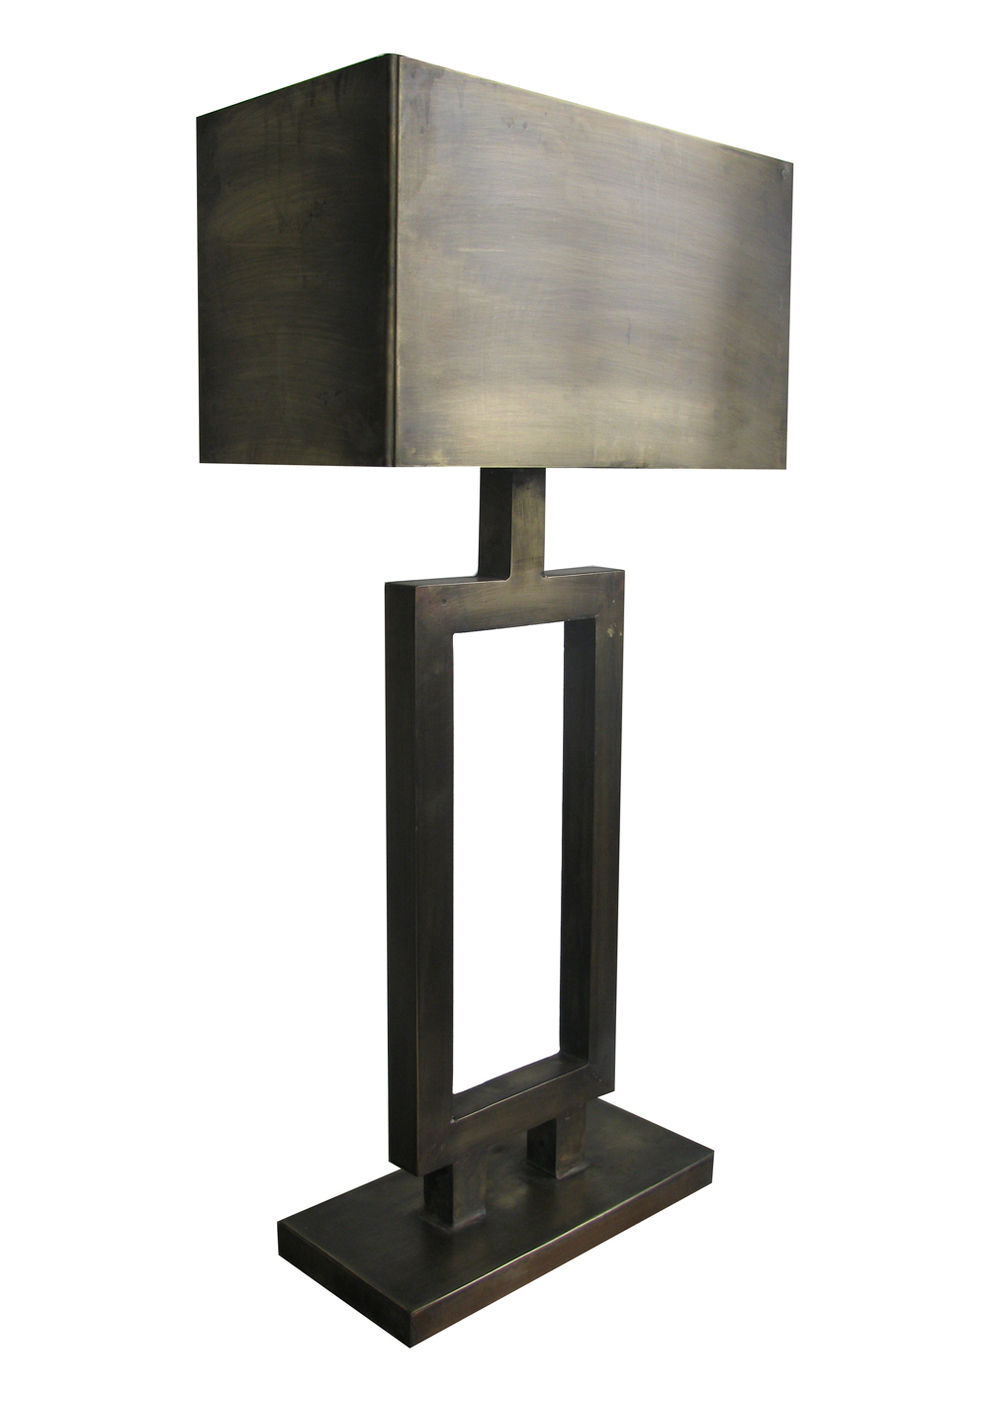 industrial_table_lamp3.jpg